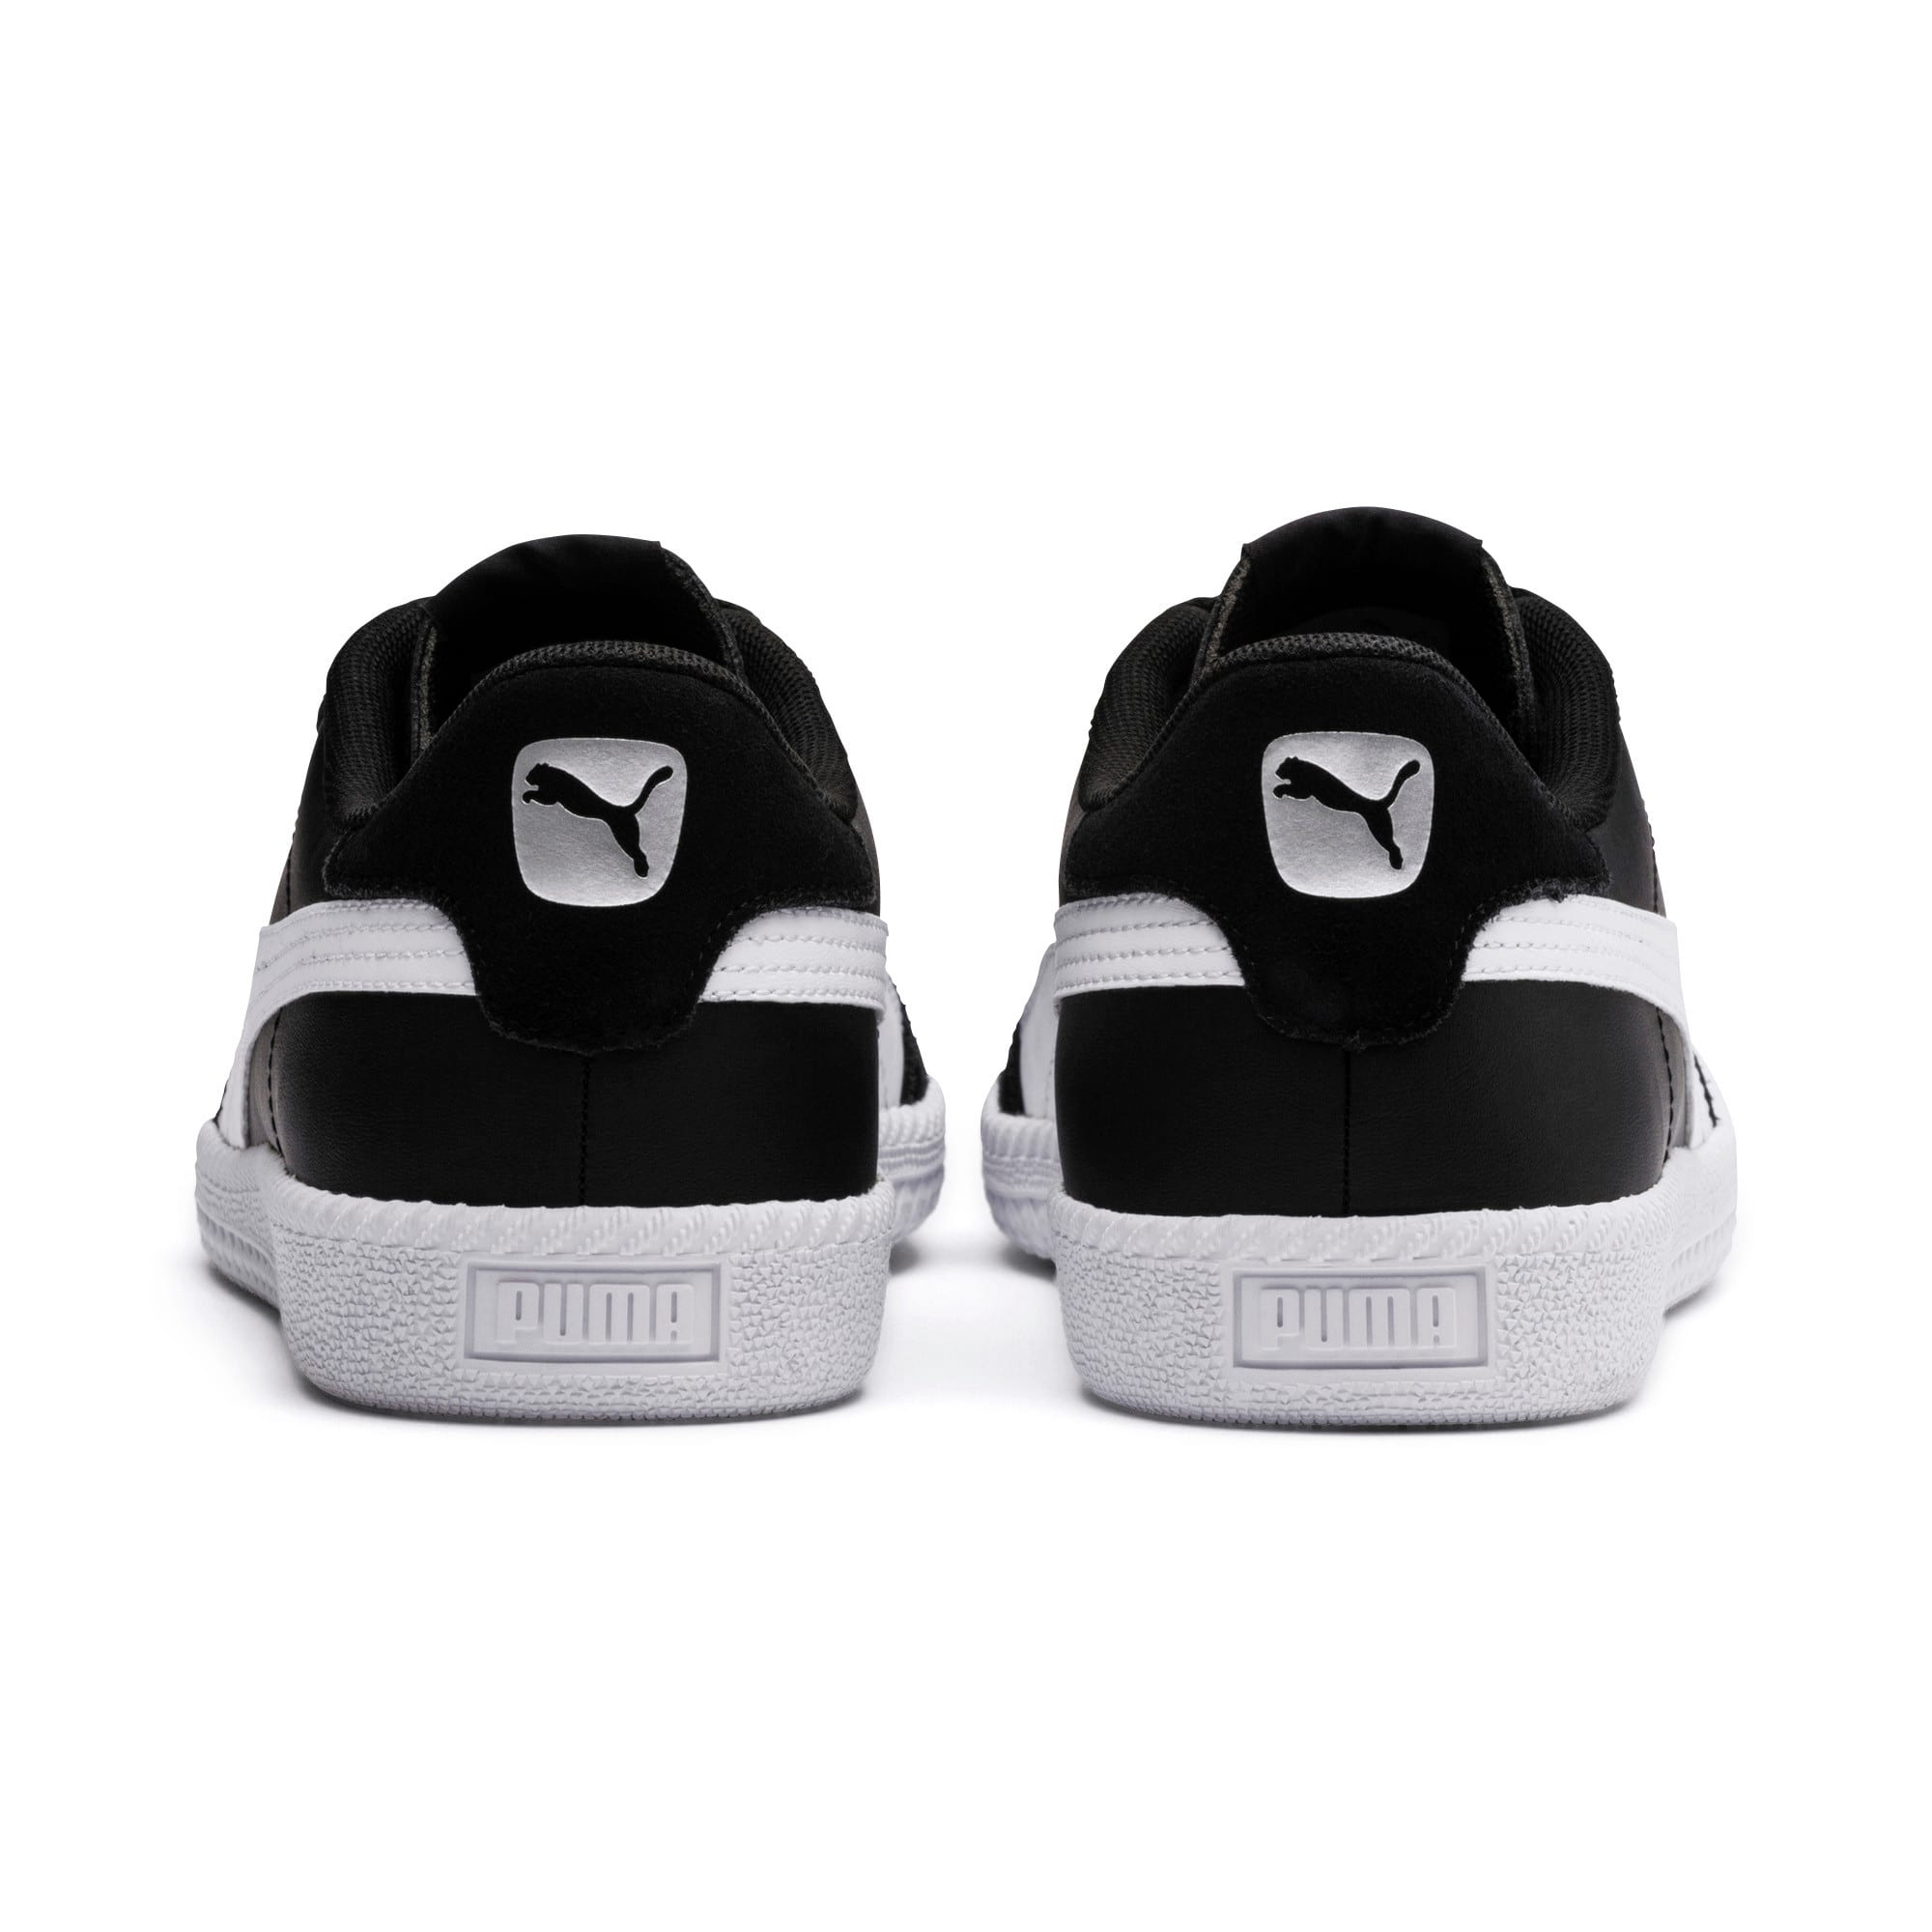 Thumbnail 3 of Astro Cup Sneakers, Puma Black-Puma White, medium